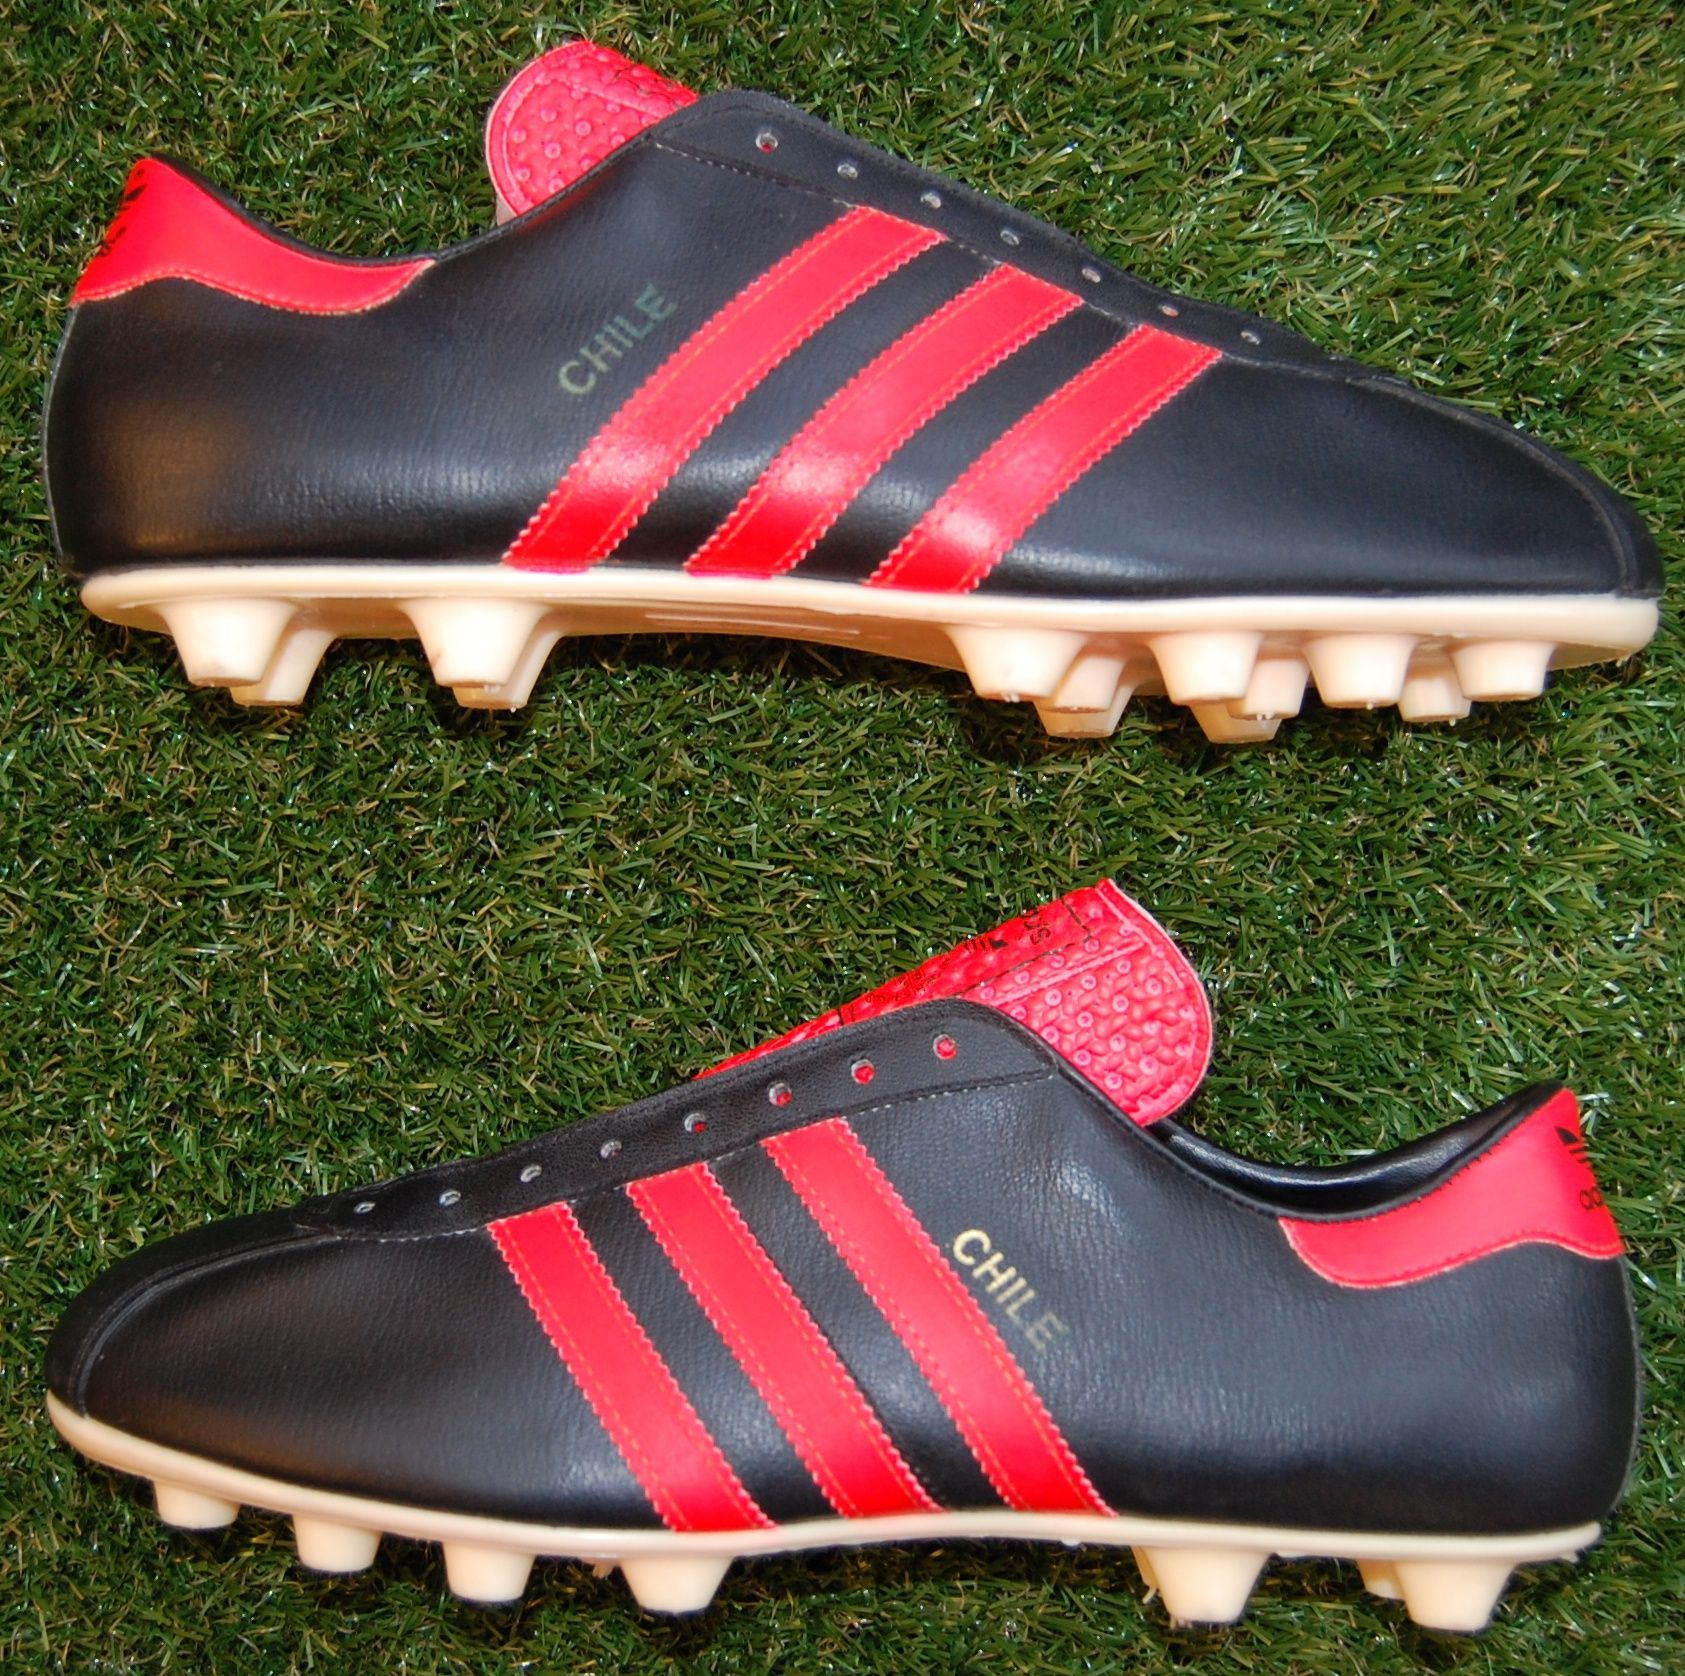 8a720f14251b Adidas Chile Boots. Adidas Boots